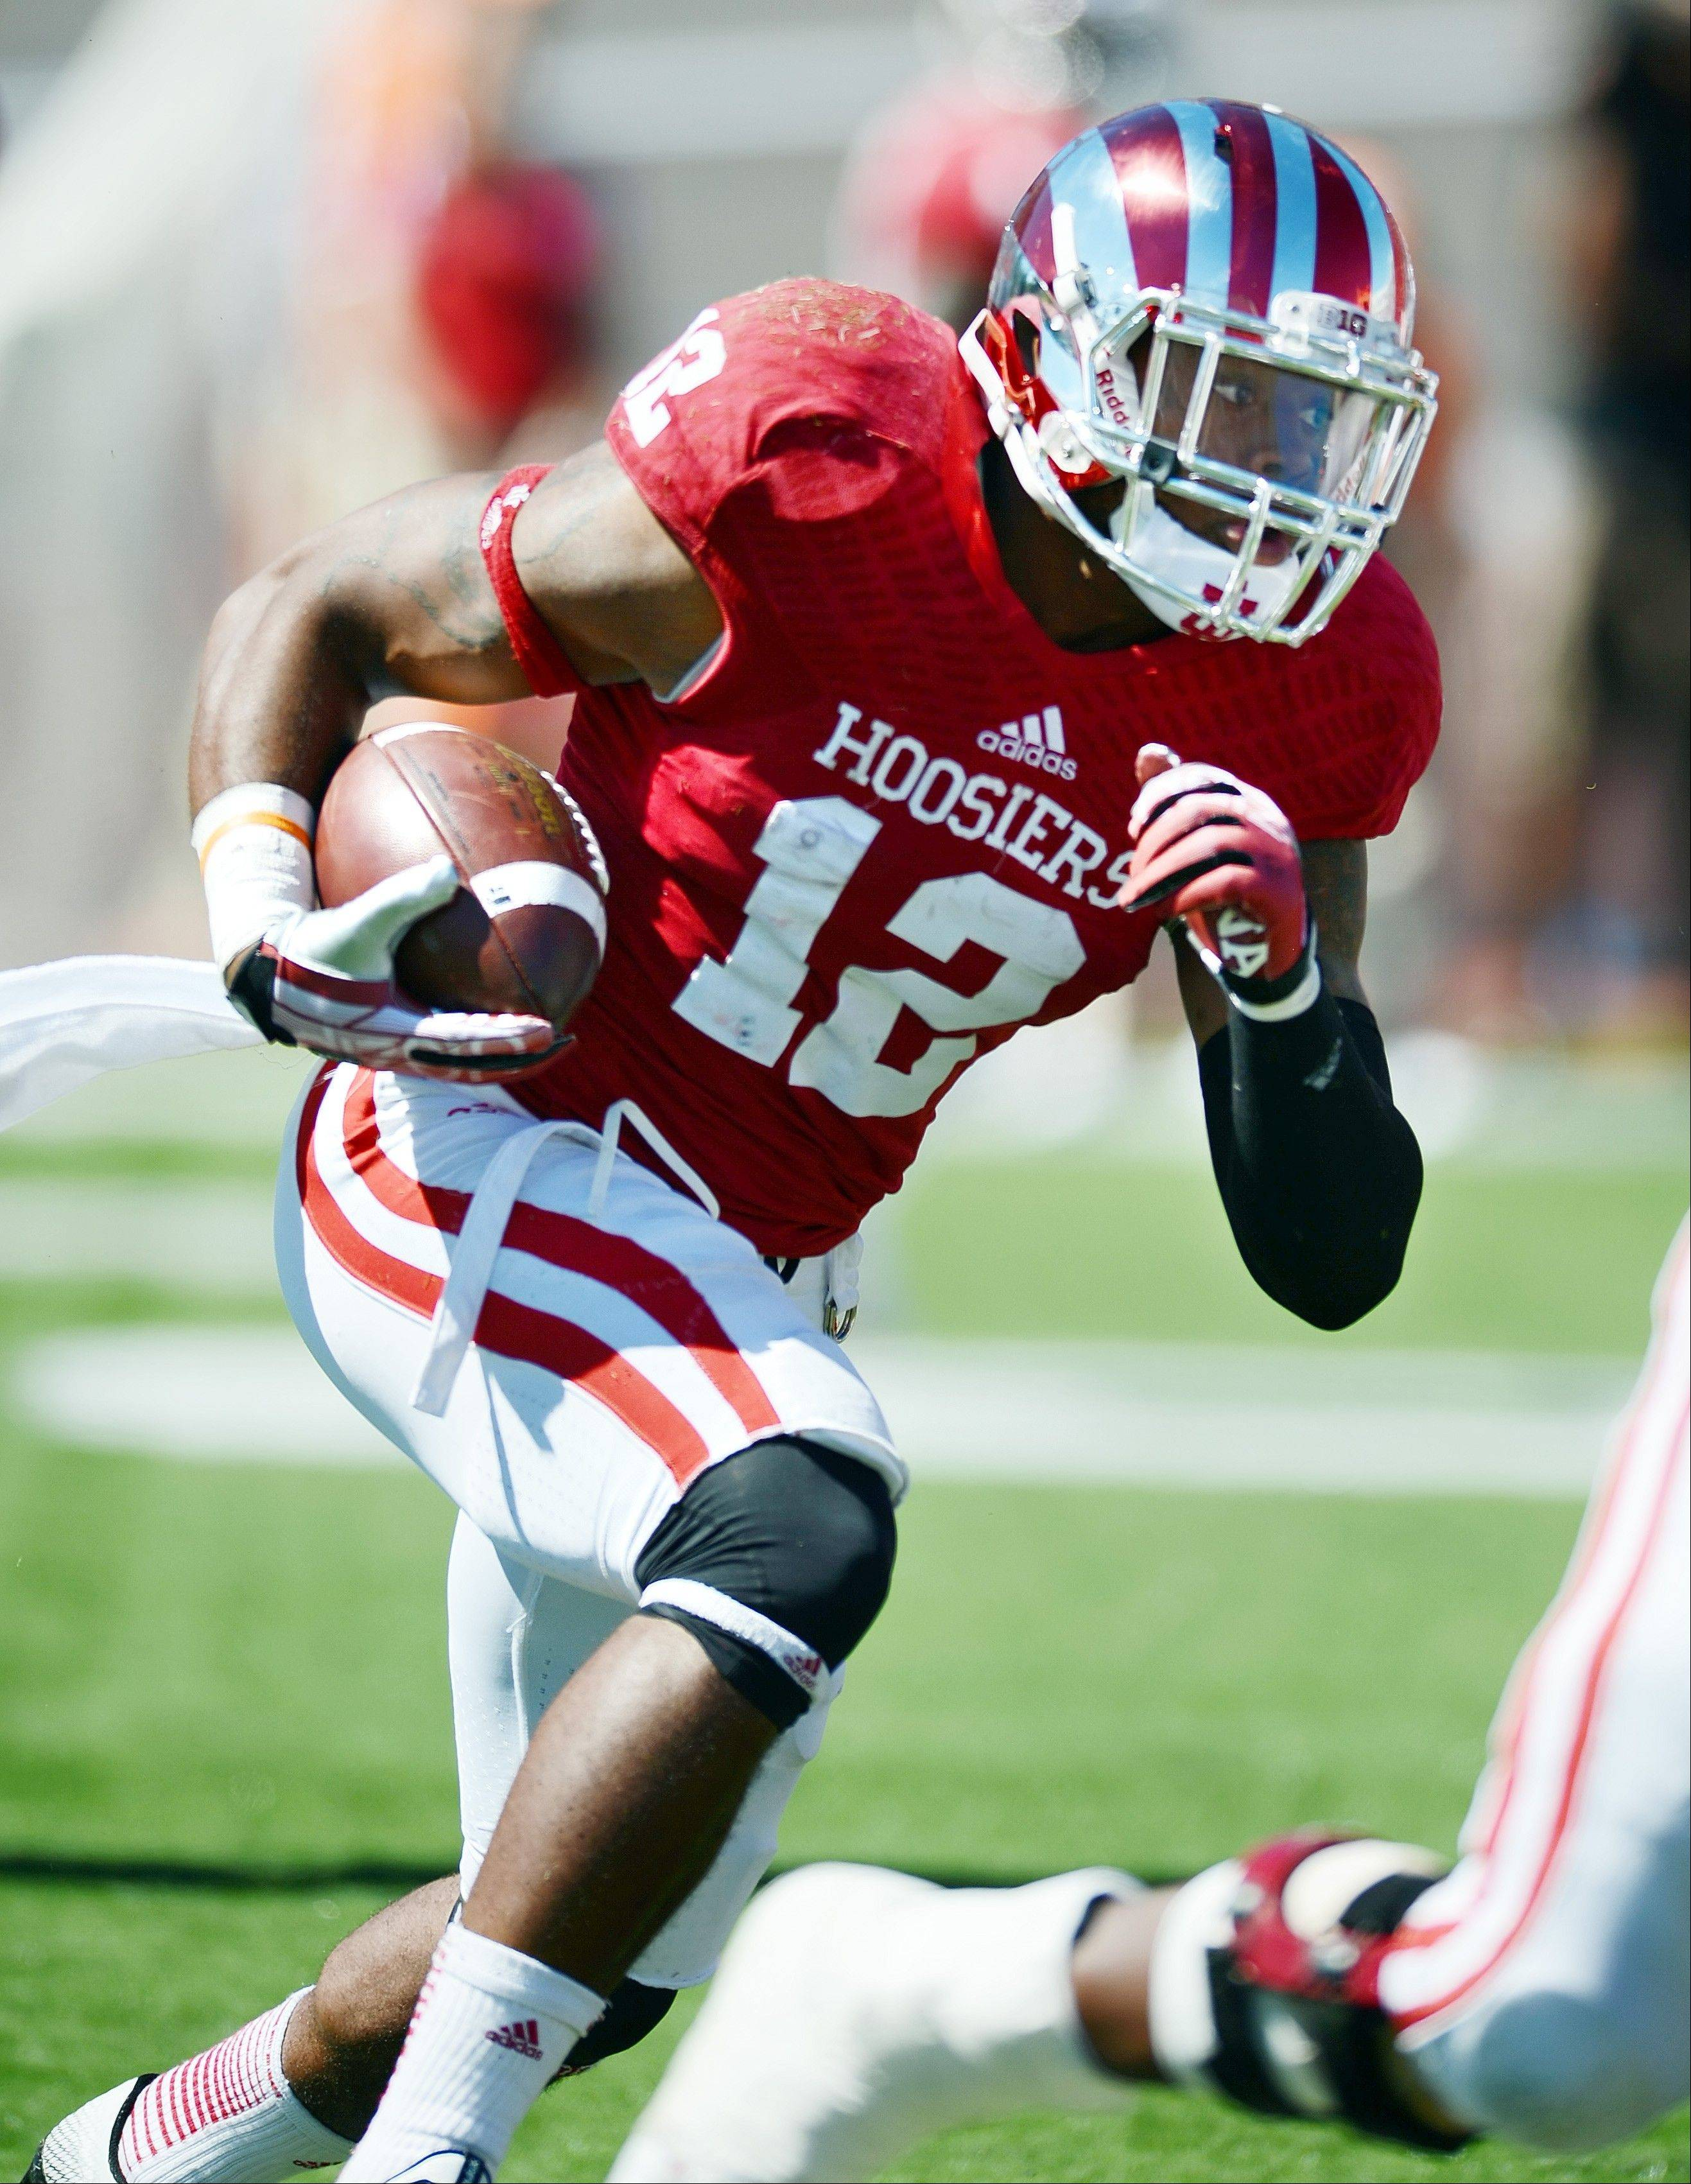 Indiana�s Stephen Houston runs against Bowling Green during last weekend�s game in Bloomington, Ind. The Hoosiers average 50.0 points per game.